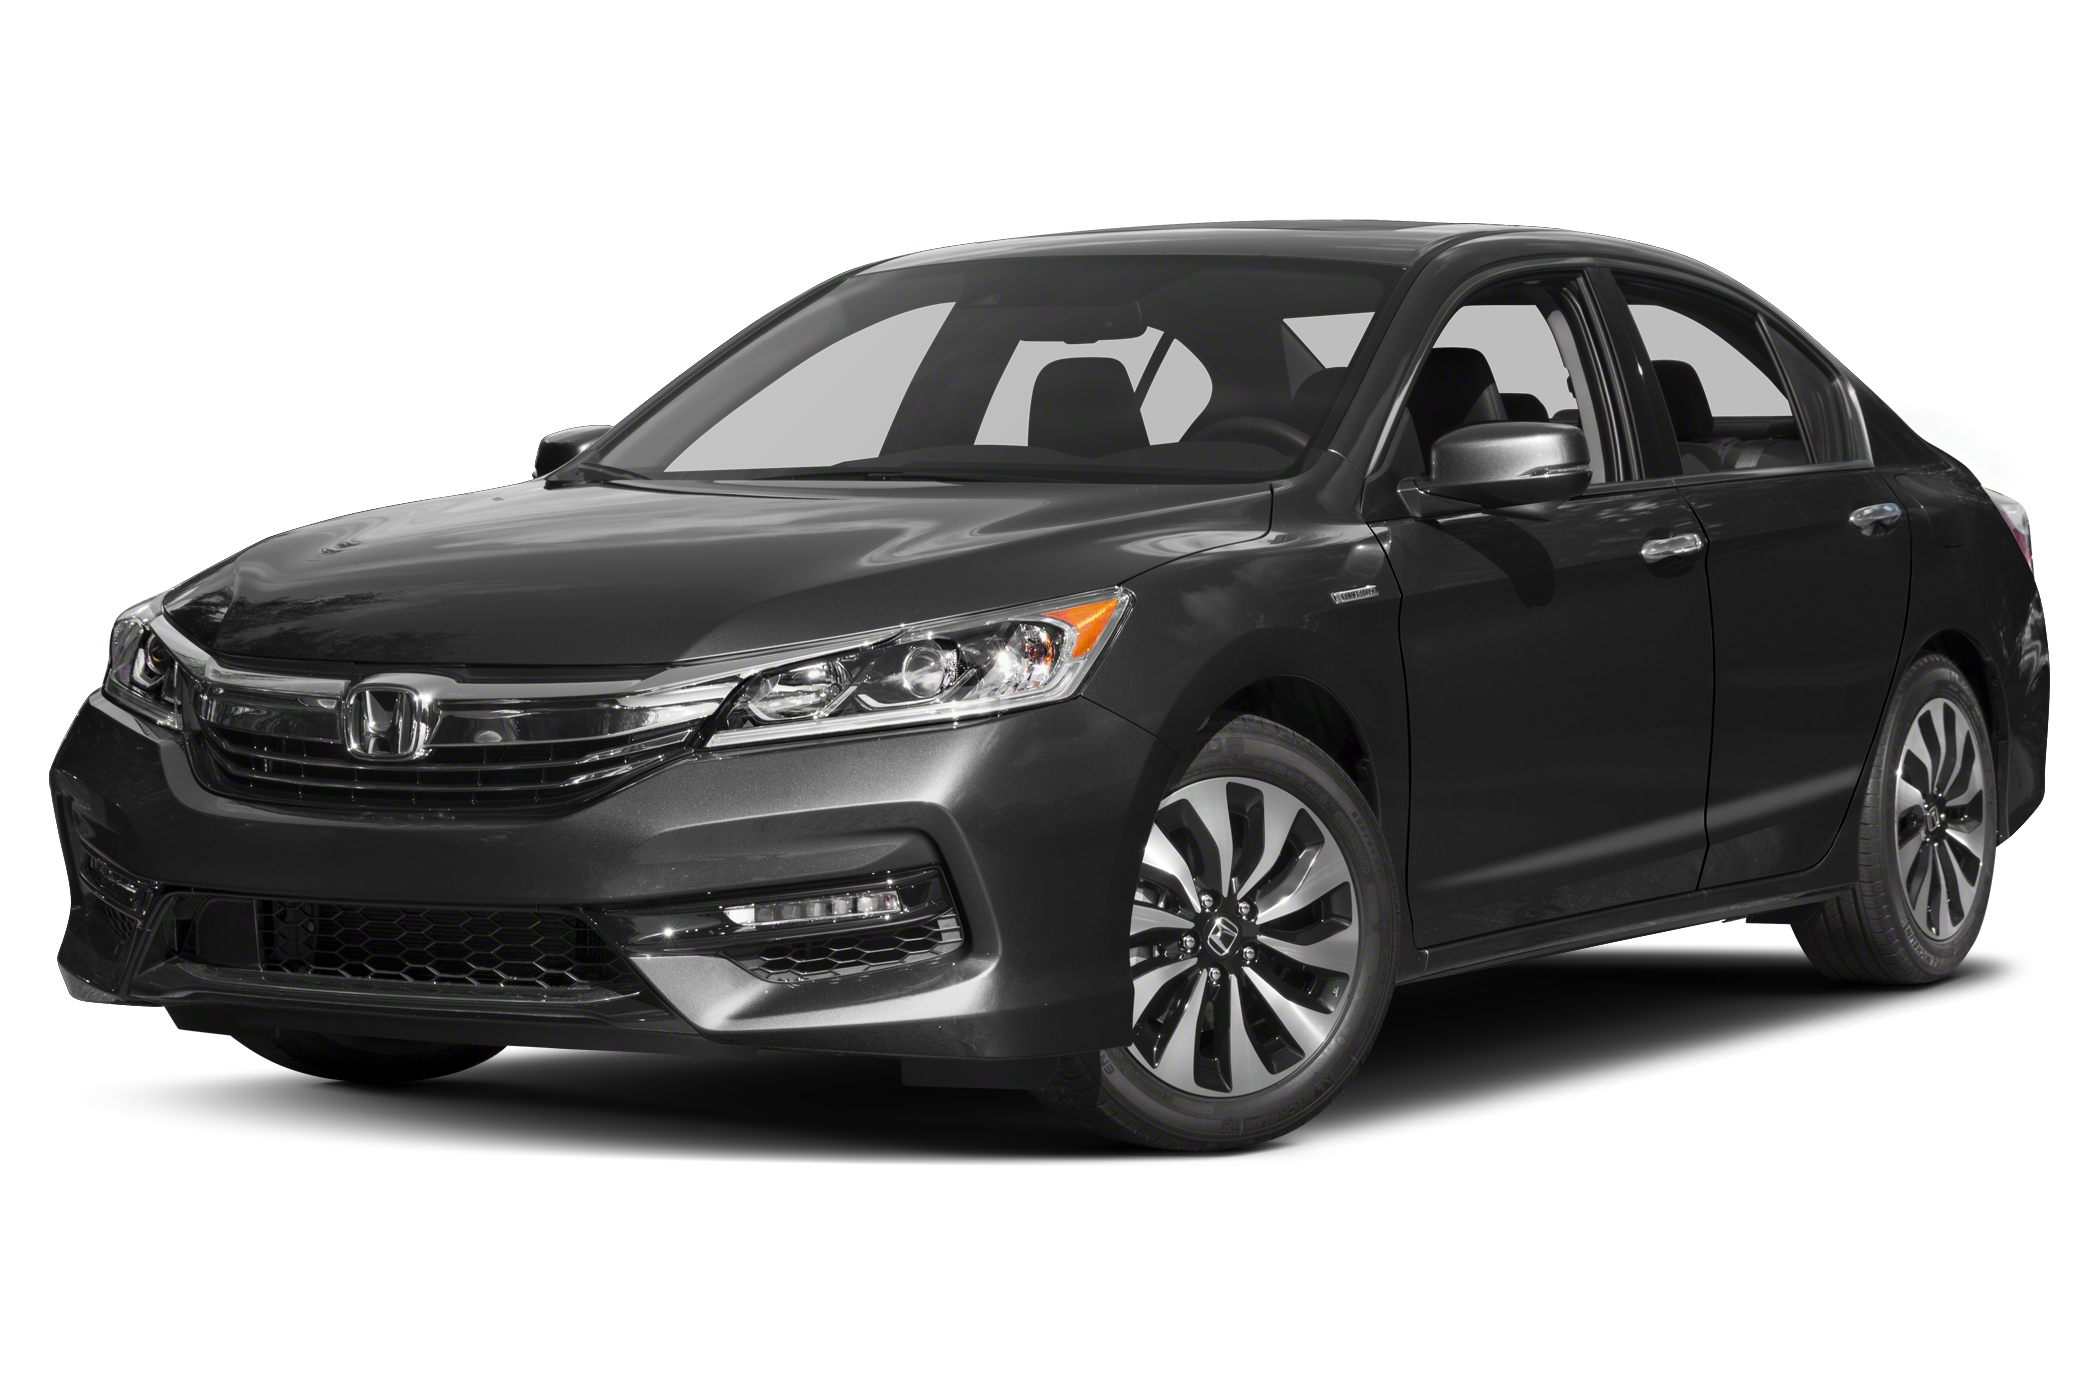 2017 Honda Accord Hybrid EX-L Move quickly Nice car Buy a new Honda from Diamond Valley Honda in